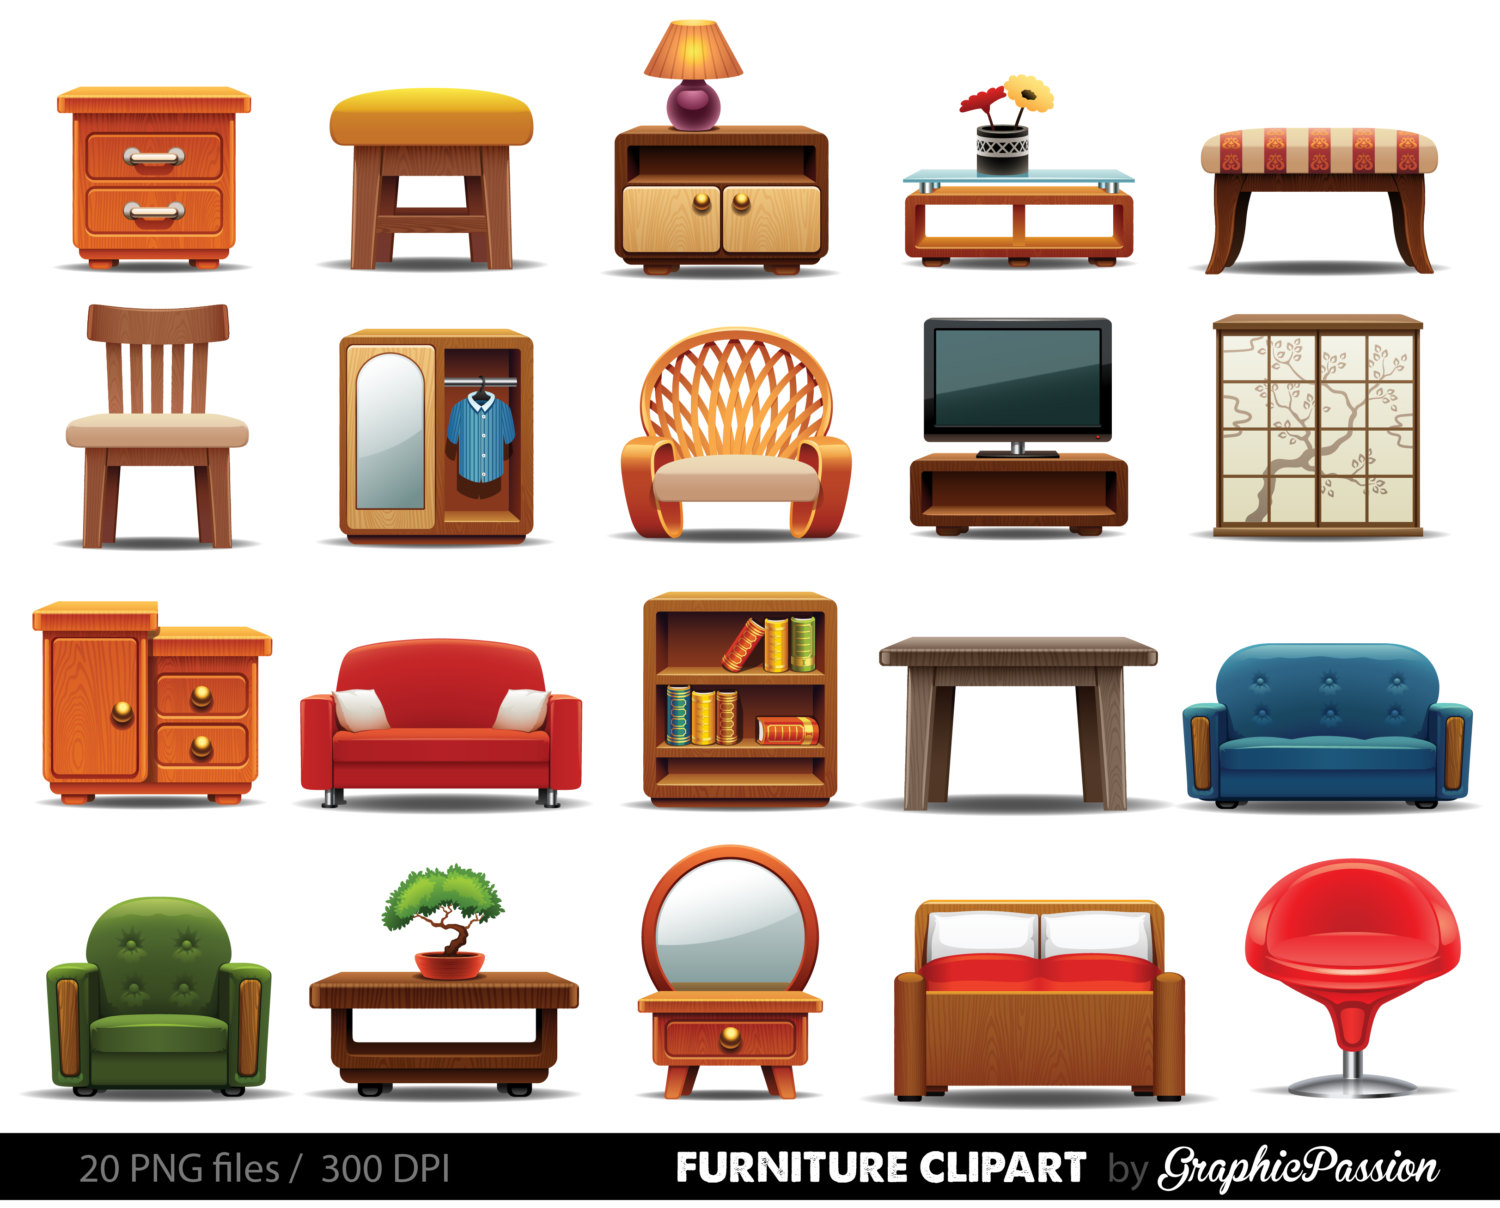 Furniture clipart clipart panda free clipart images for Minimalist household items